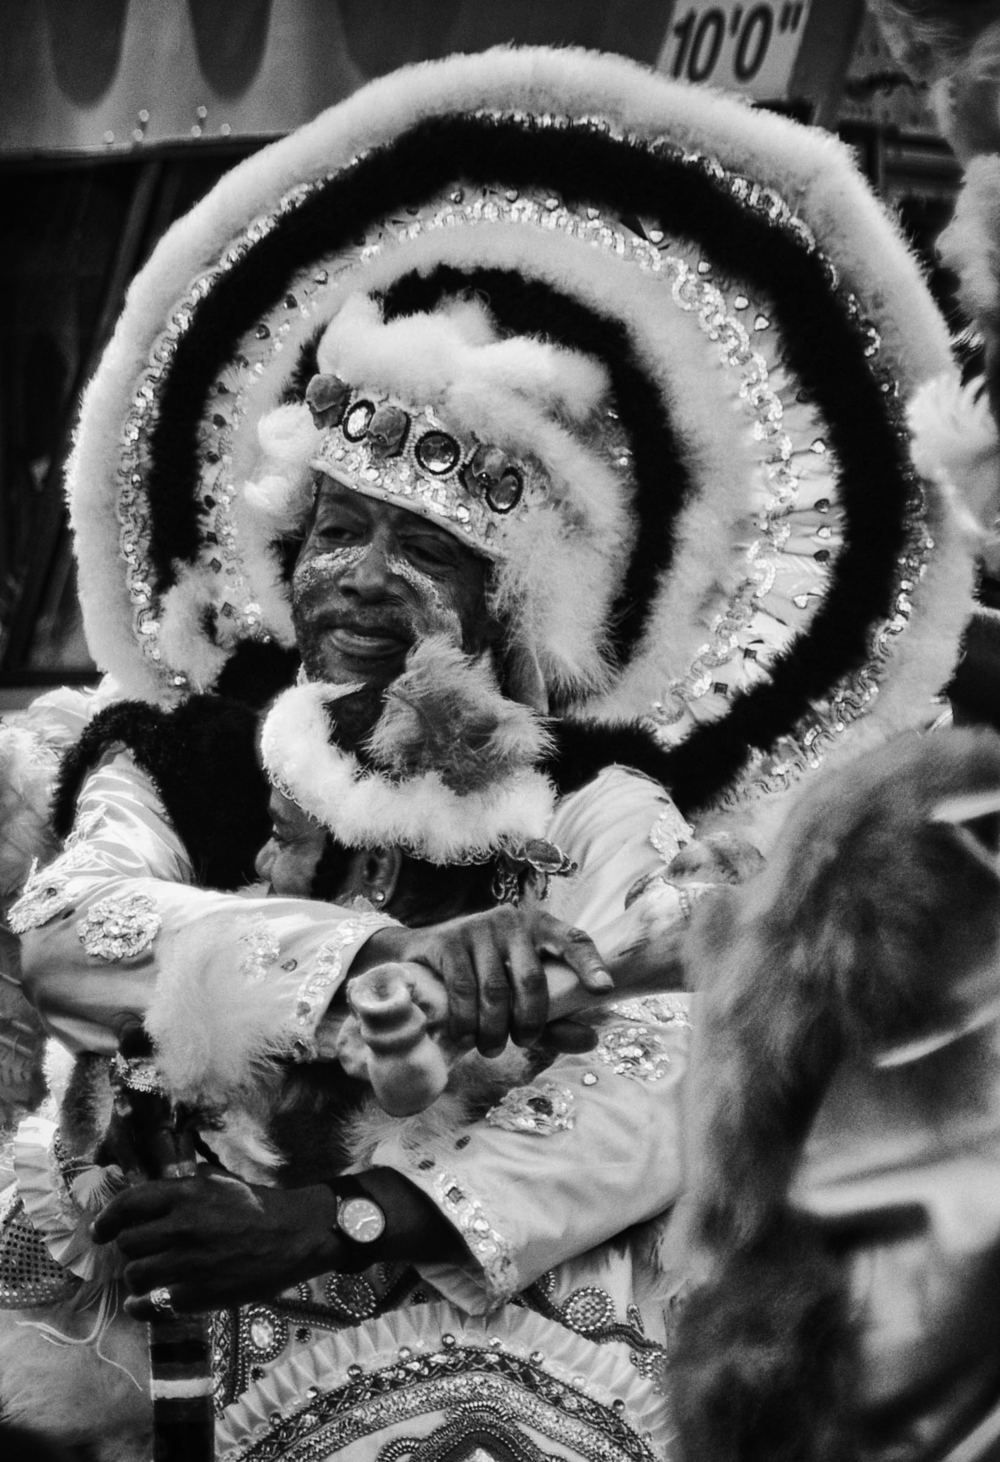 Portraits of mardi gras indians kimberly spins photography greetings new orleans 2012g m4hsunfo